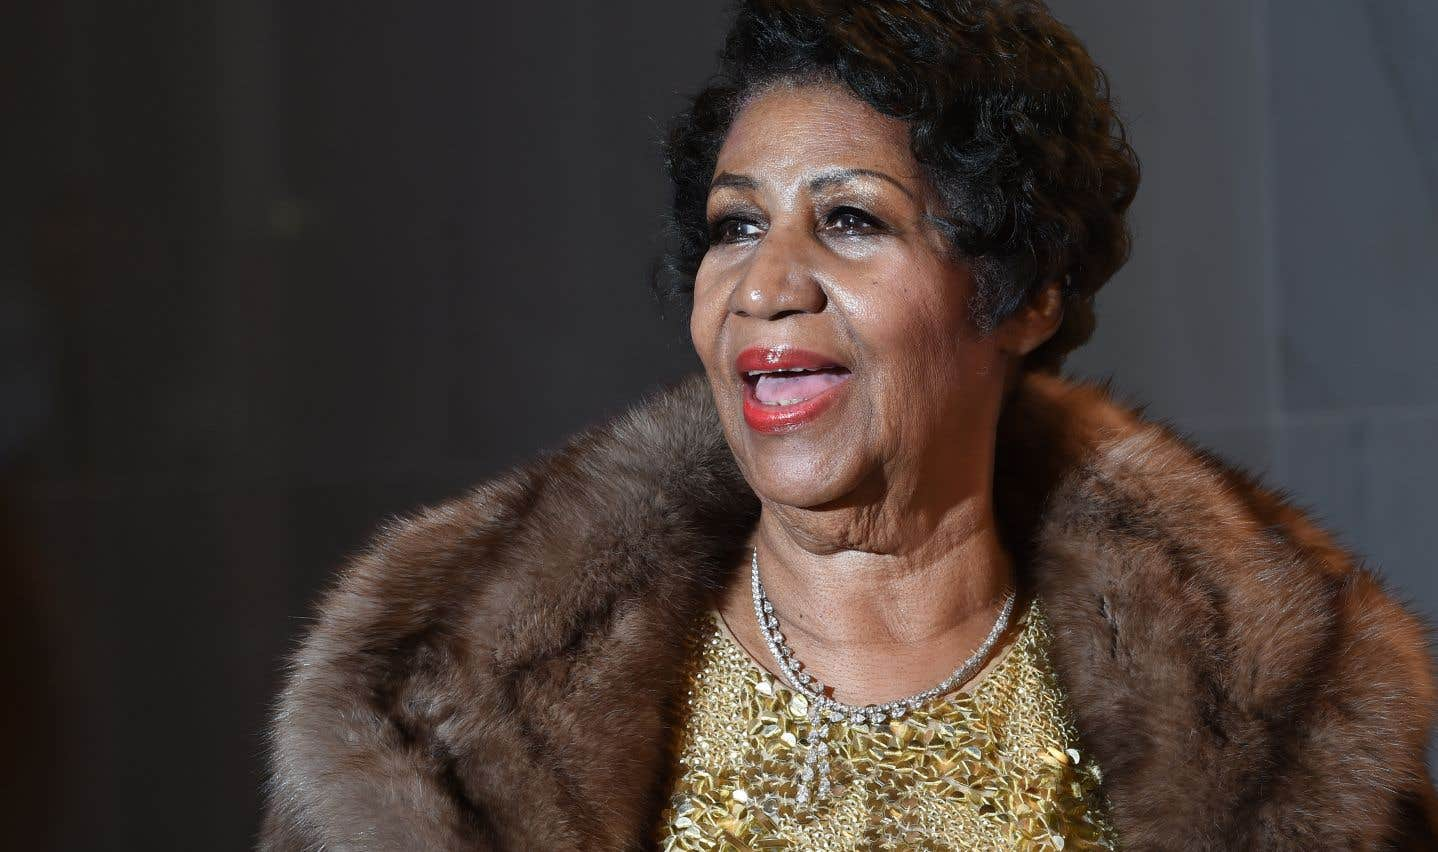 Aretha Franklin sur le tapis rouge des prix des arts de la scène du Kennedy Center, à Washington, en 2015